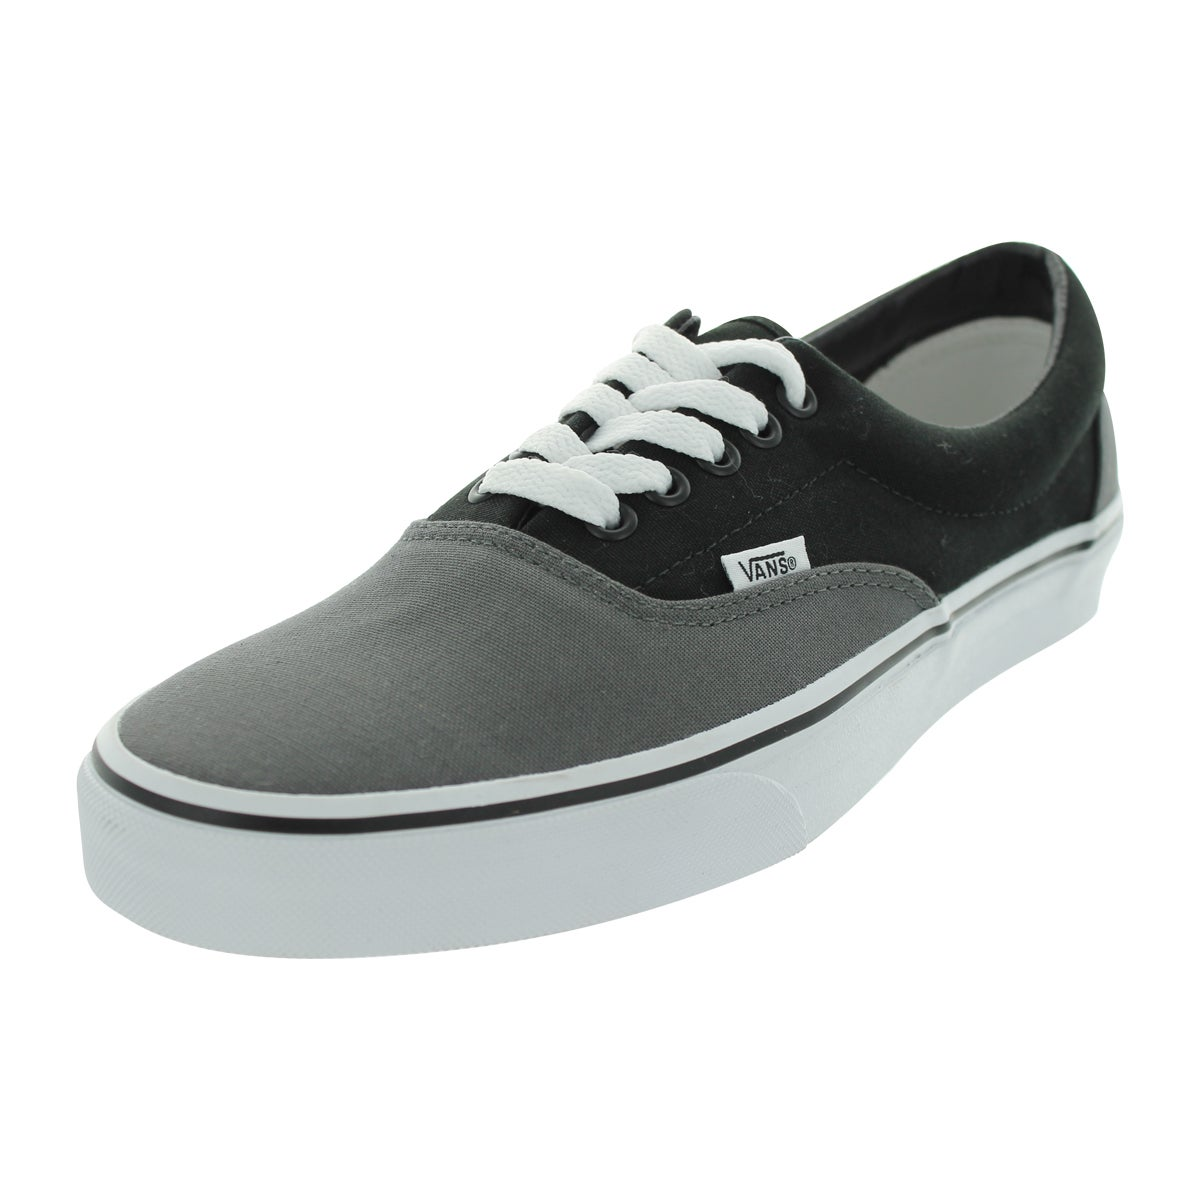 a816e94c58 Shop Vans Era Skate Shoes (Pewter Black) - Free Shipping Today ...